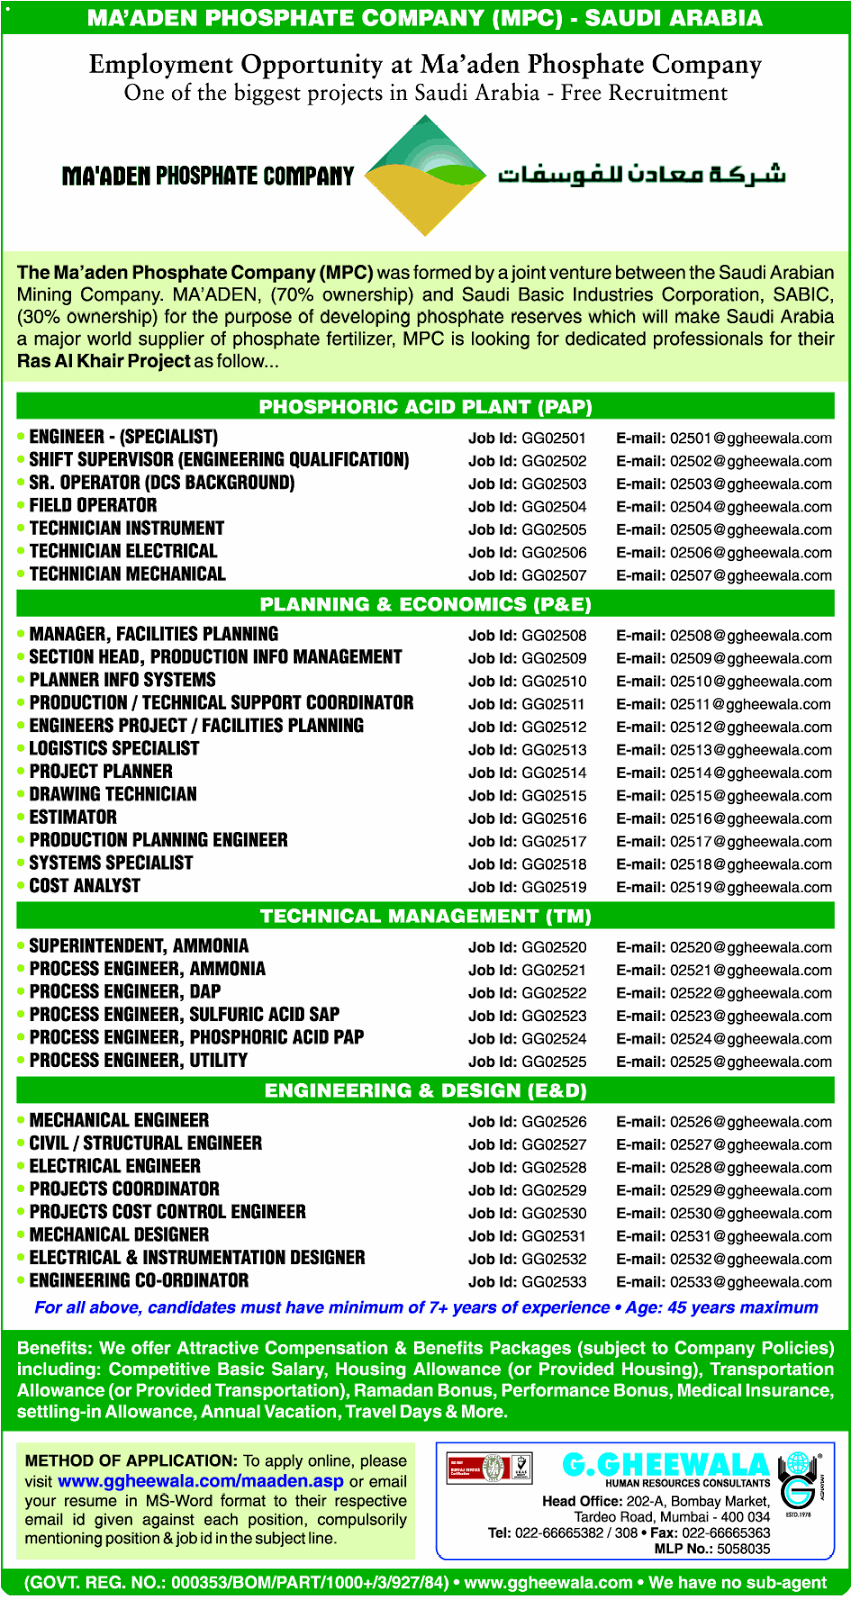 Employement Opportunitty @ MA'ADEN PHOSPHATE COMPANY (MPC